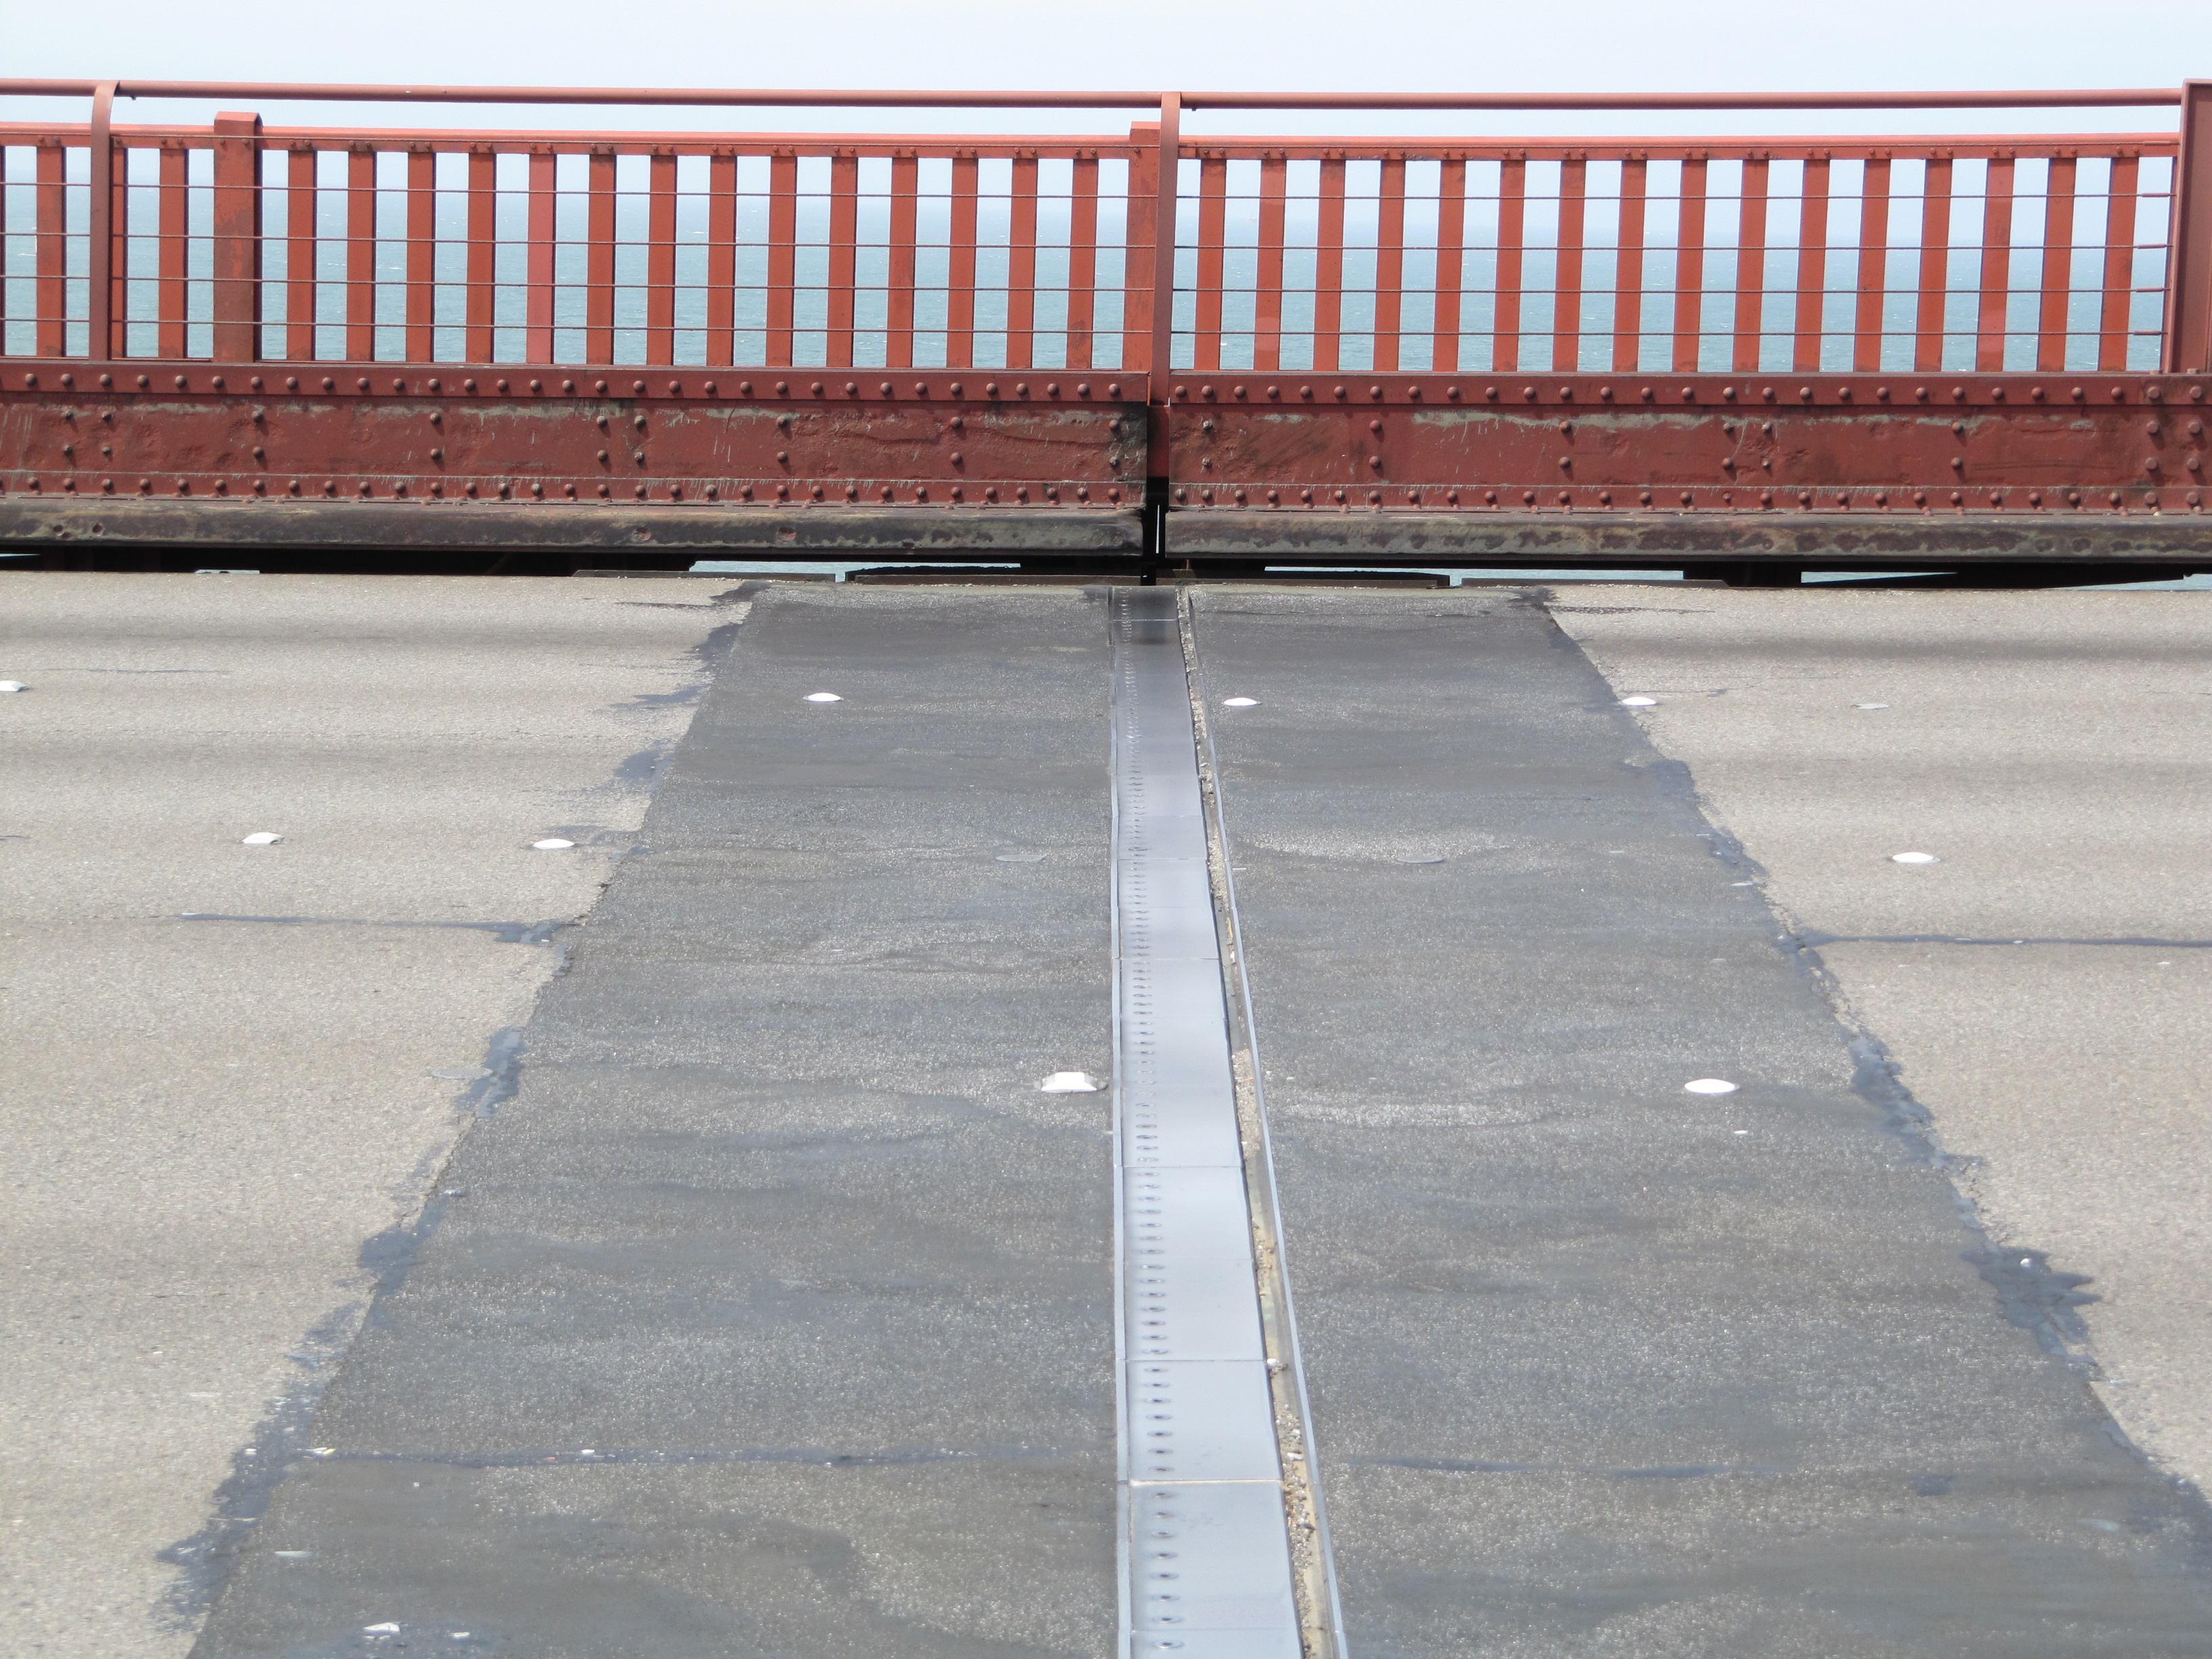 Two slabs of concrete on a bridge surface are separated by a gap covered with a metal plate that is free to slide.